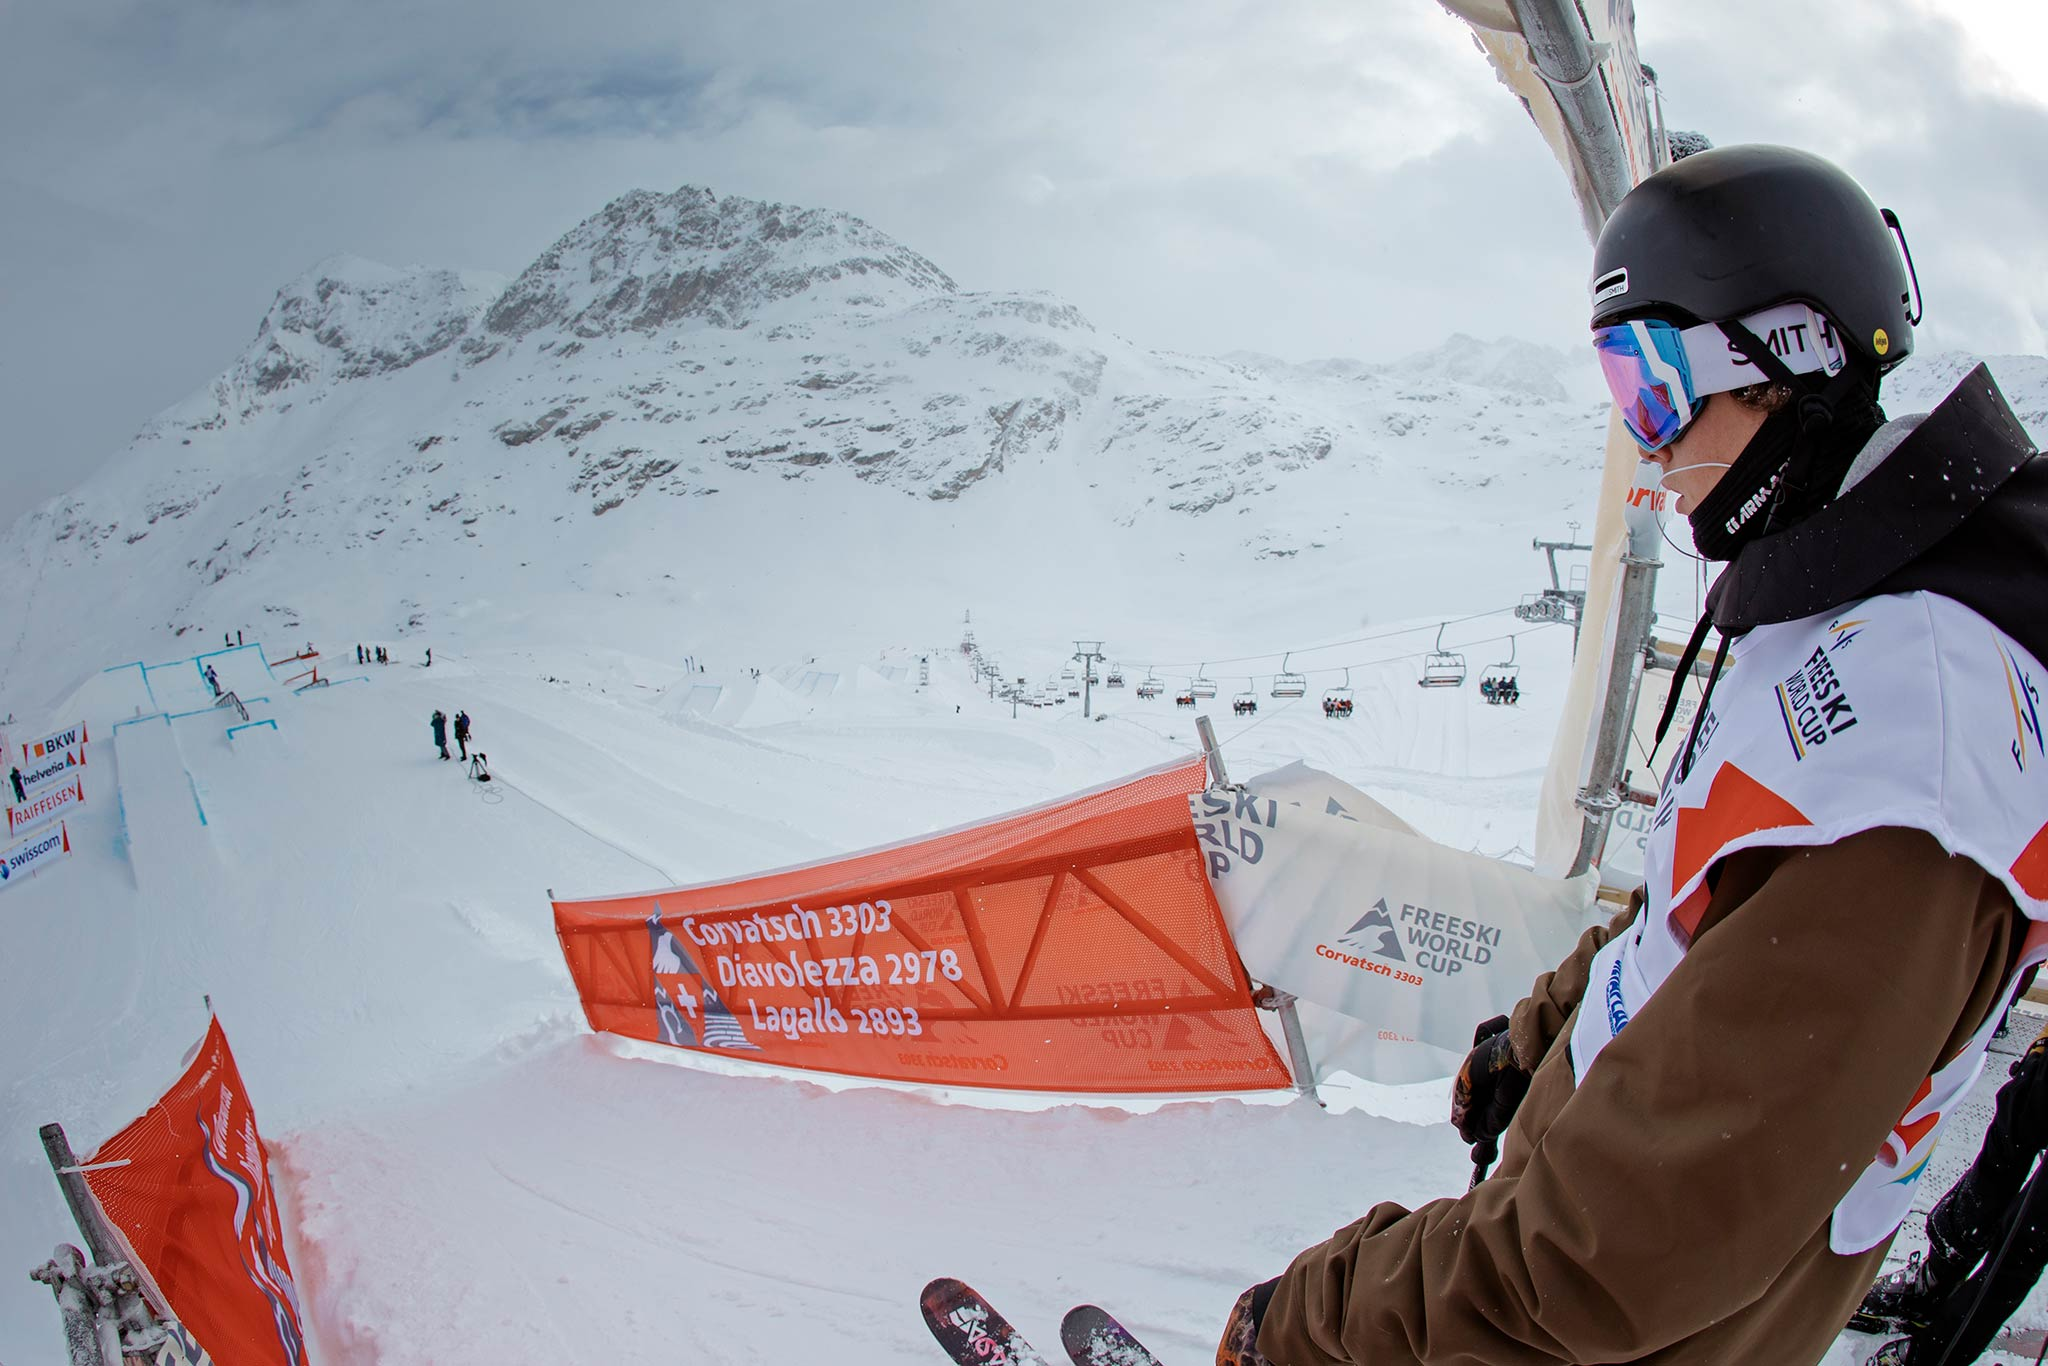 FIS Freestyle Slopestyle World Cup 18/19 #5: Corvatsch